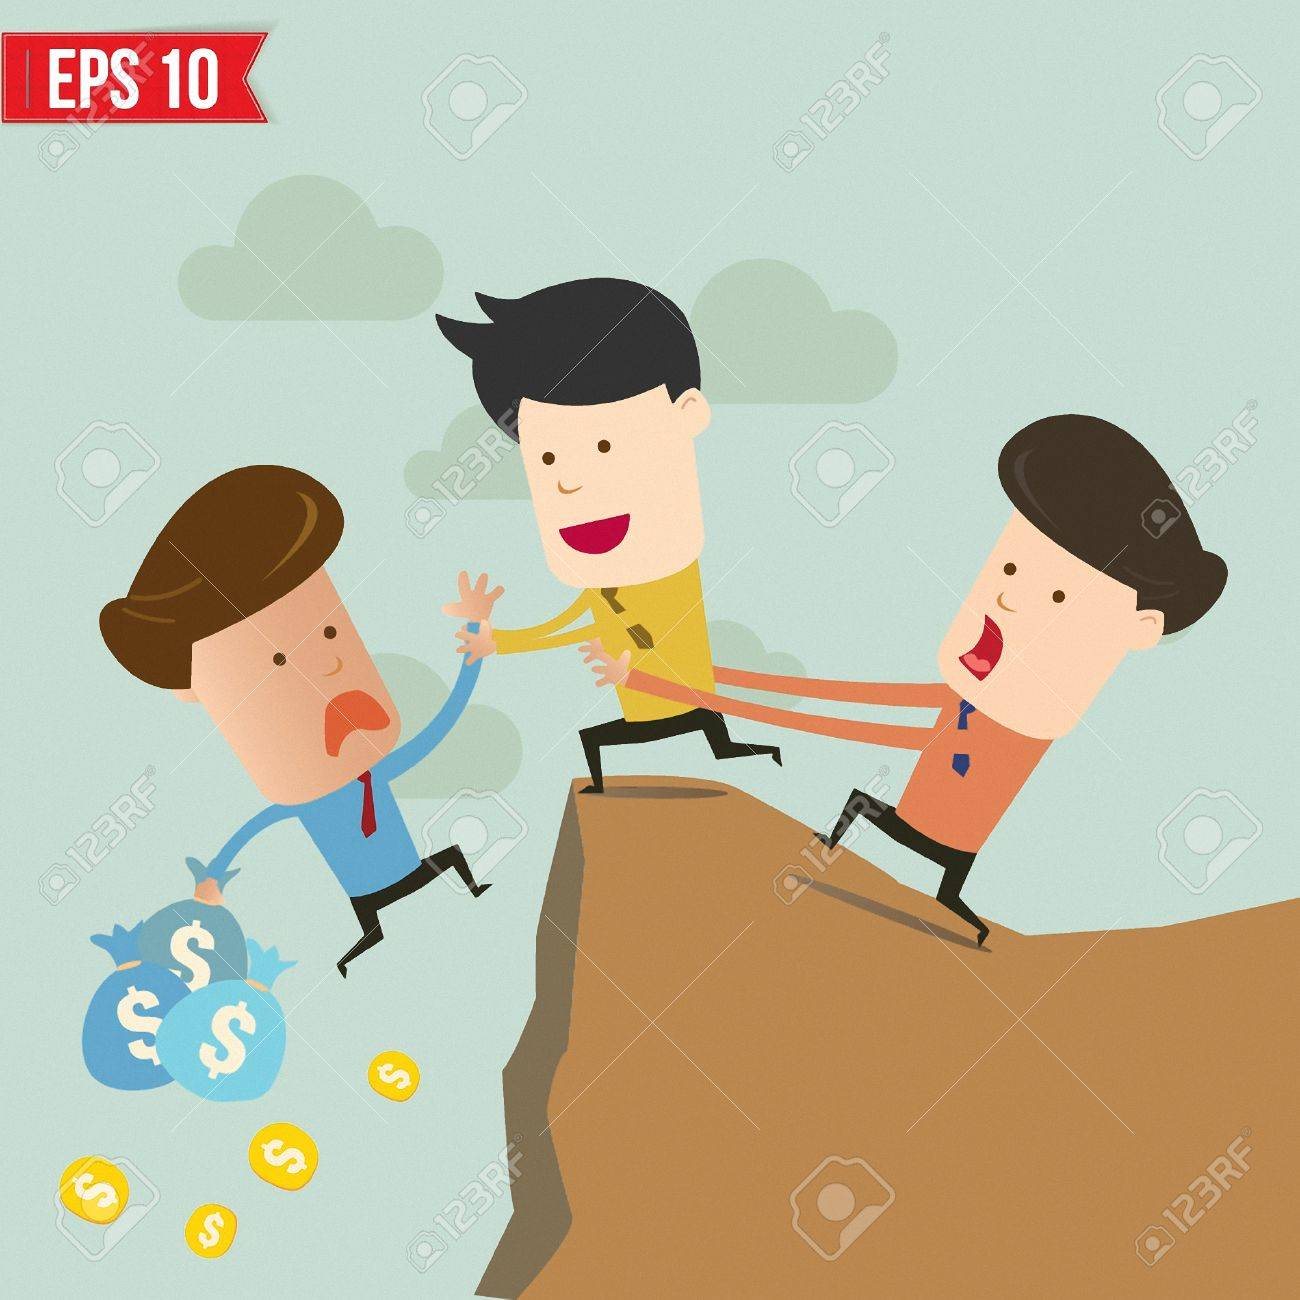 Cartoon Business man helping another over the cliff - Vector illustration Stock Vector - 23351114